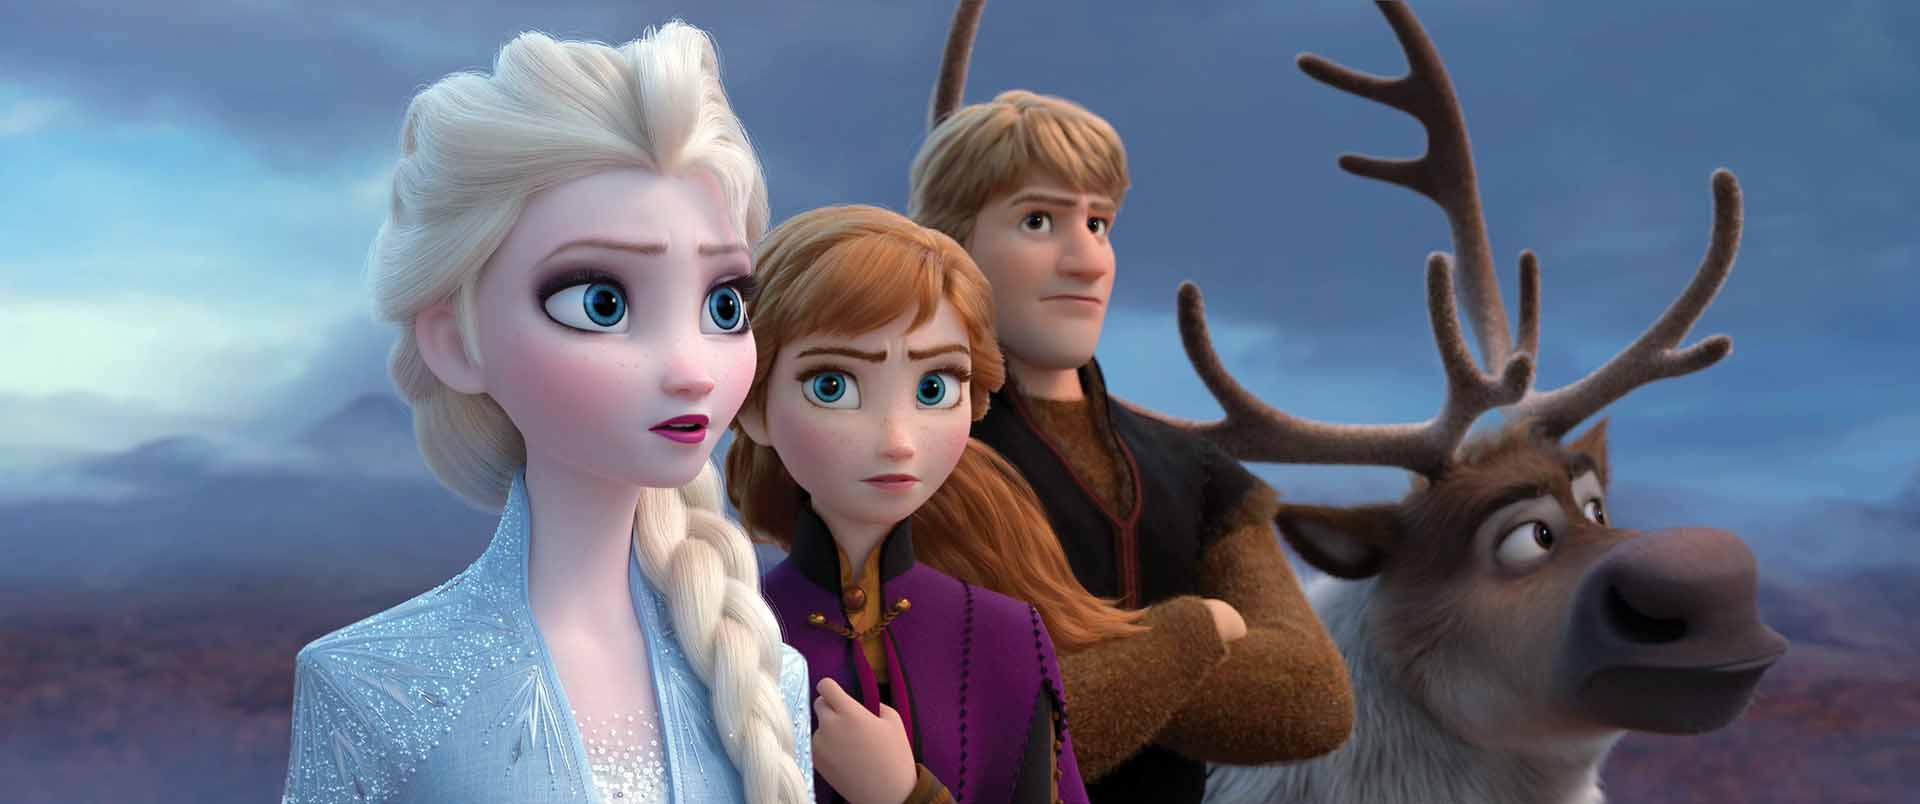 Frozen 2 latest